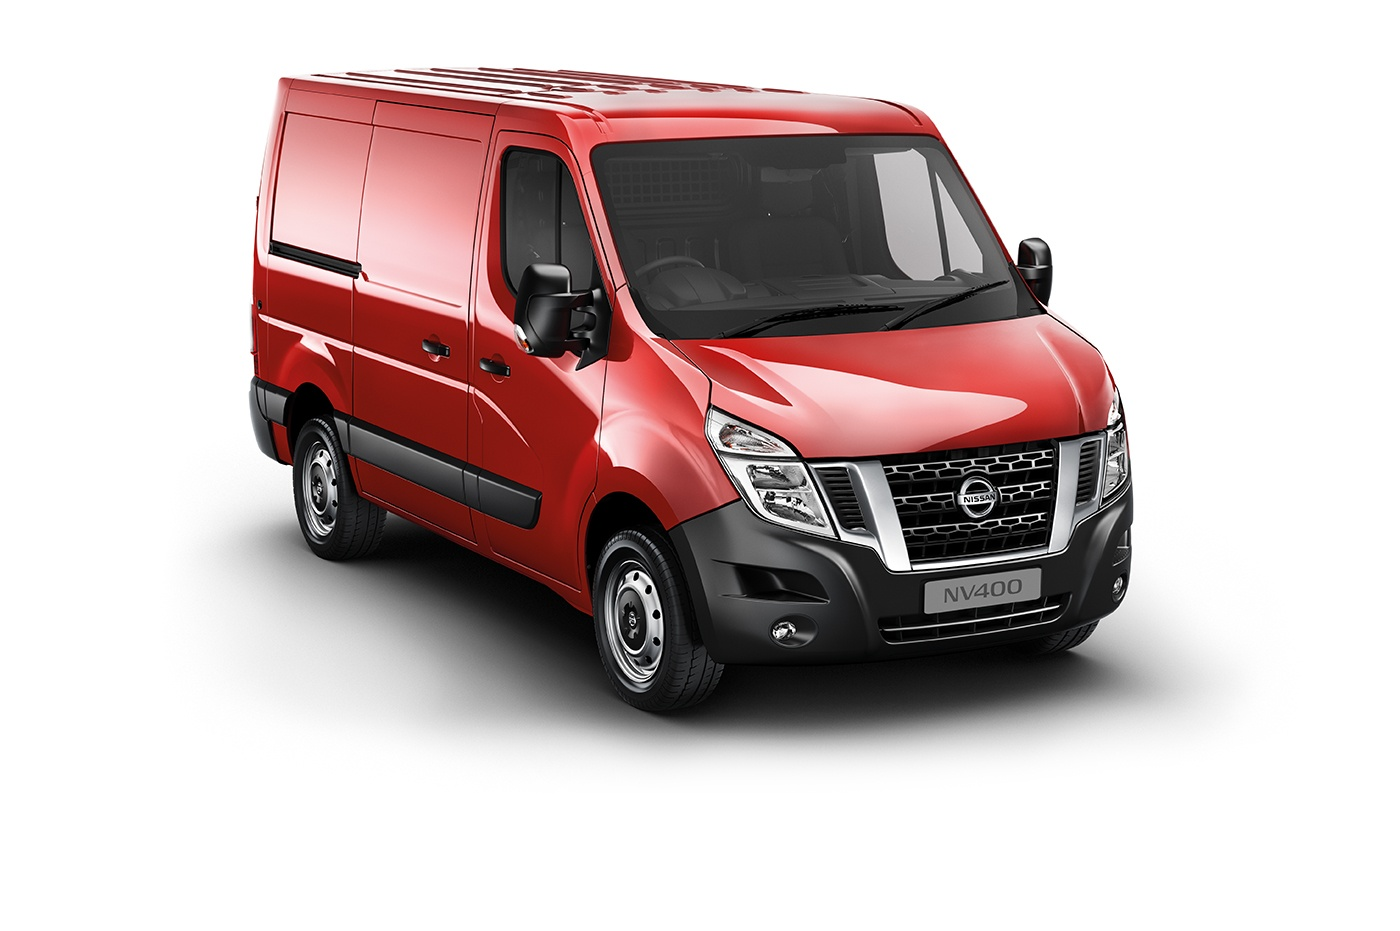 nissan nv400 contract hire find the best deal nissan. Black Bedroom Furniture Sets. Home Design Ideas